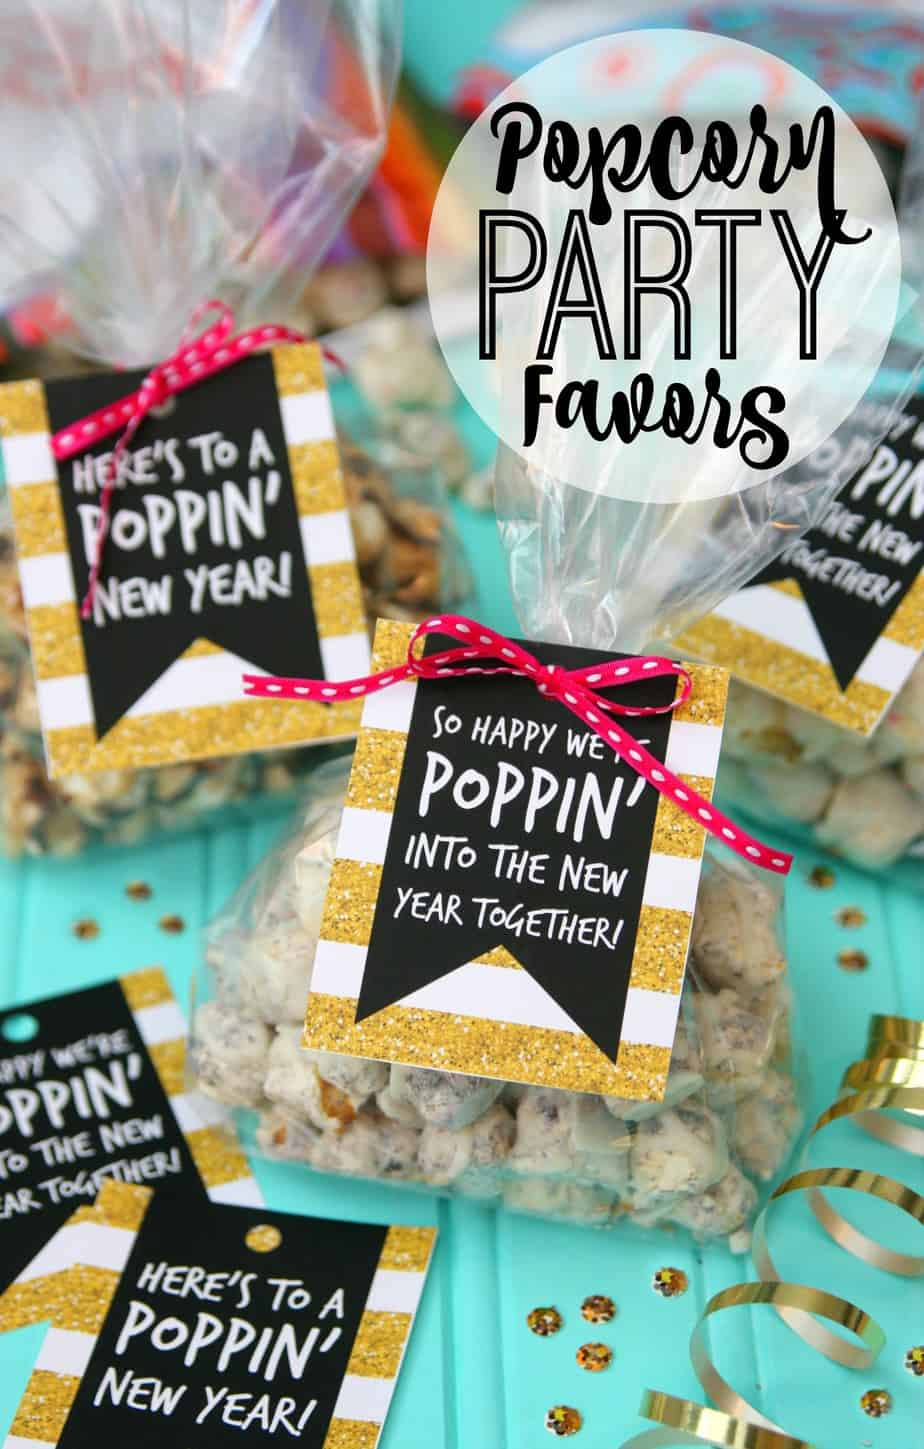 Popcorn Party Favors - Happy-Go-Lucky